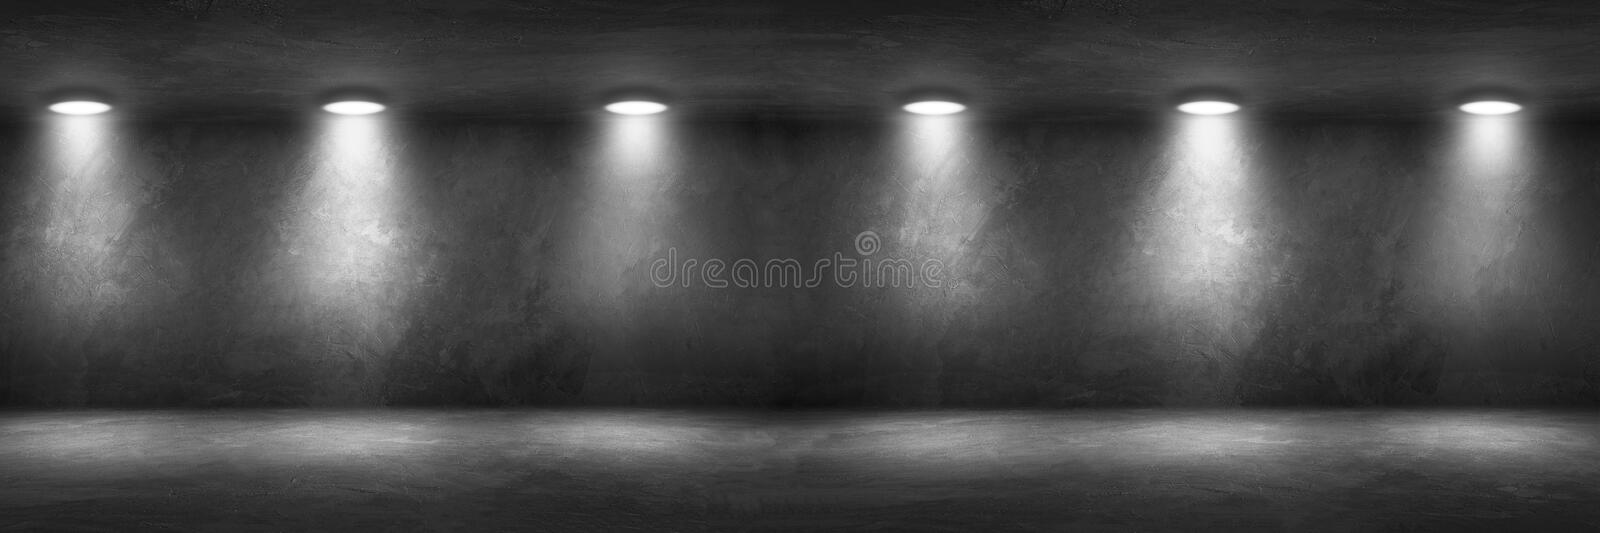 Concrete Wall Room with Floor Empty Garage Interior. Background stock photo